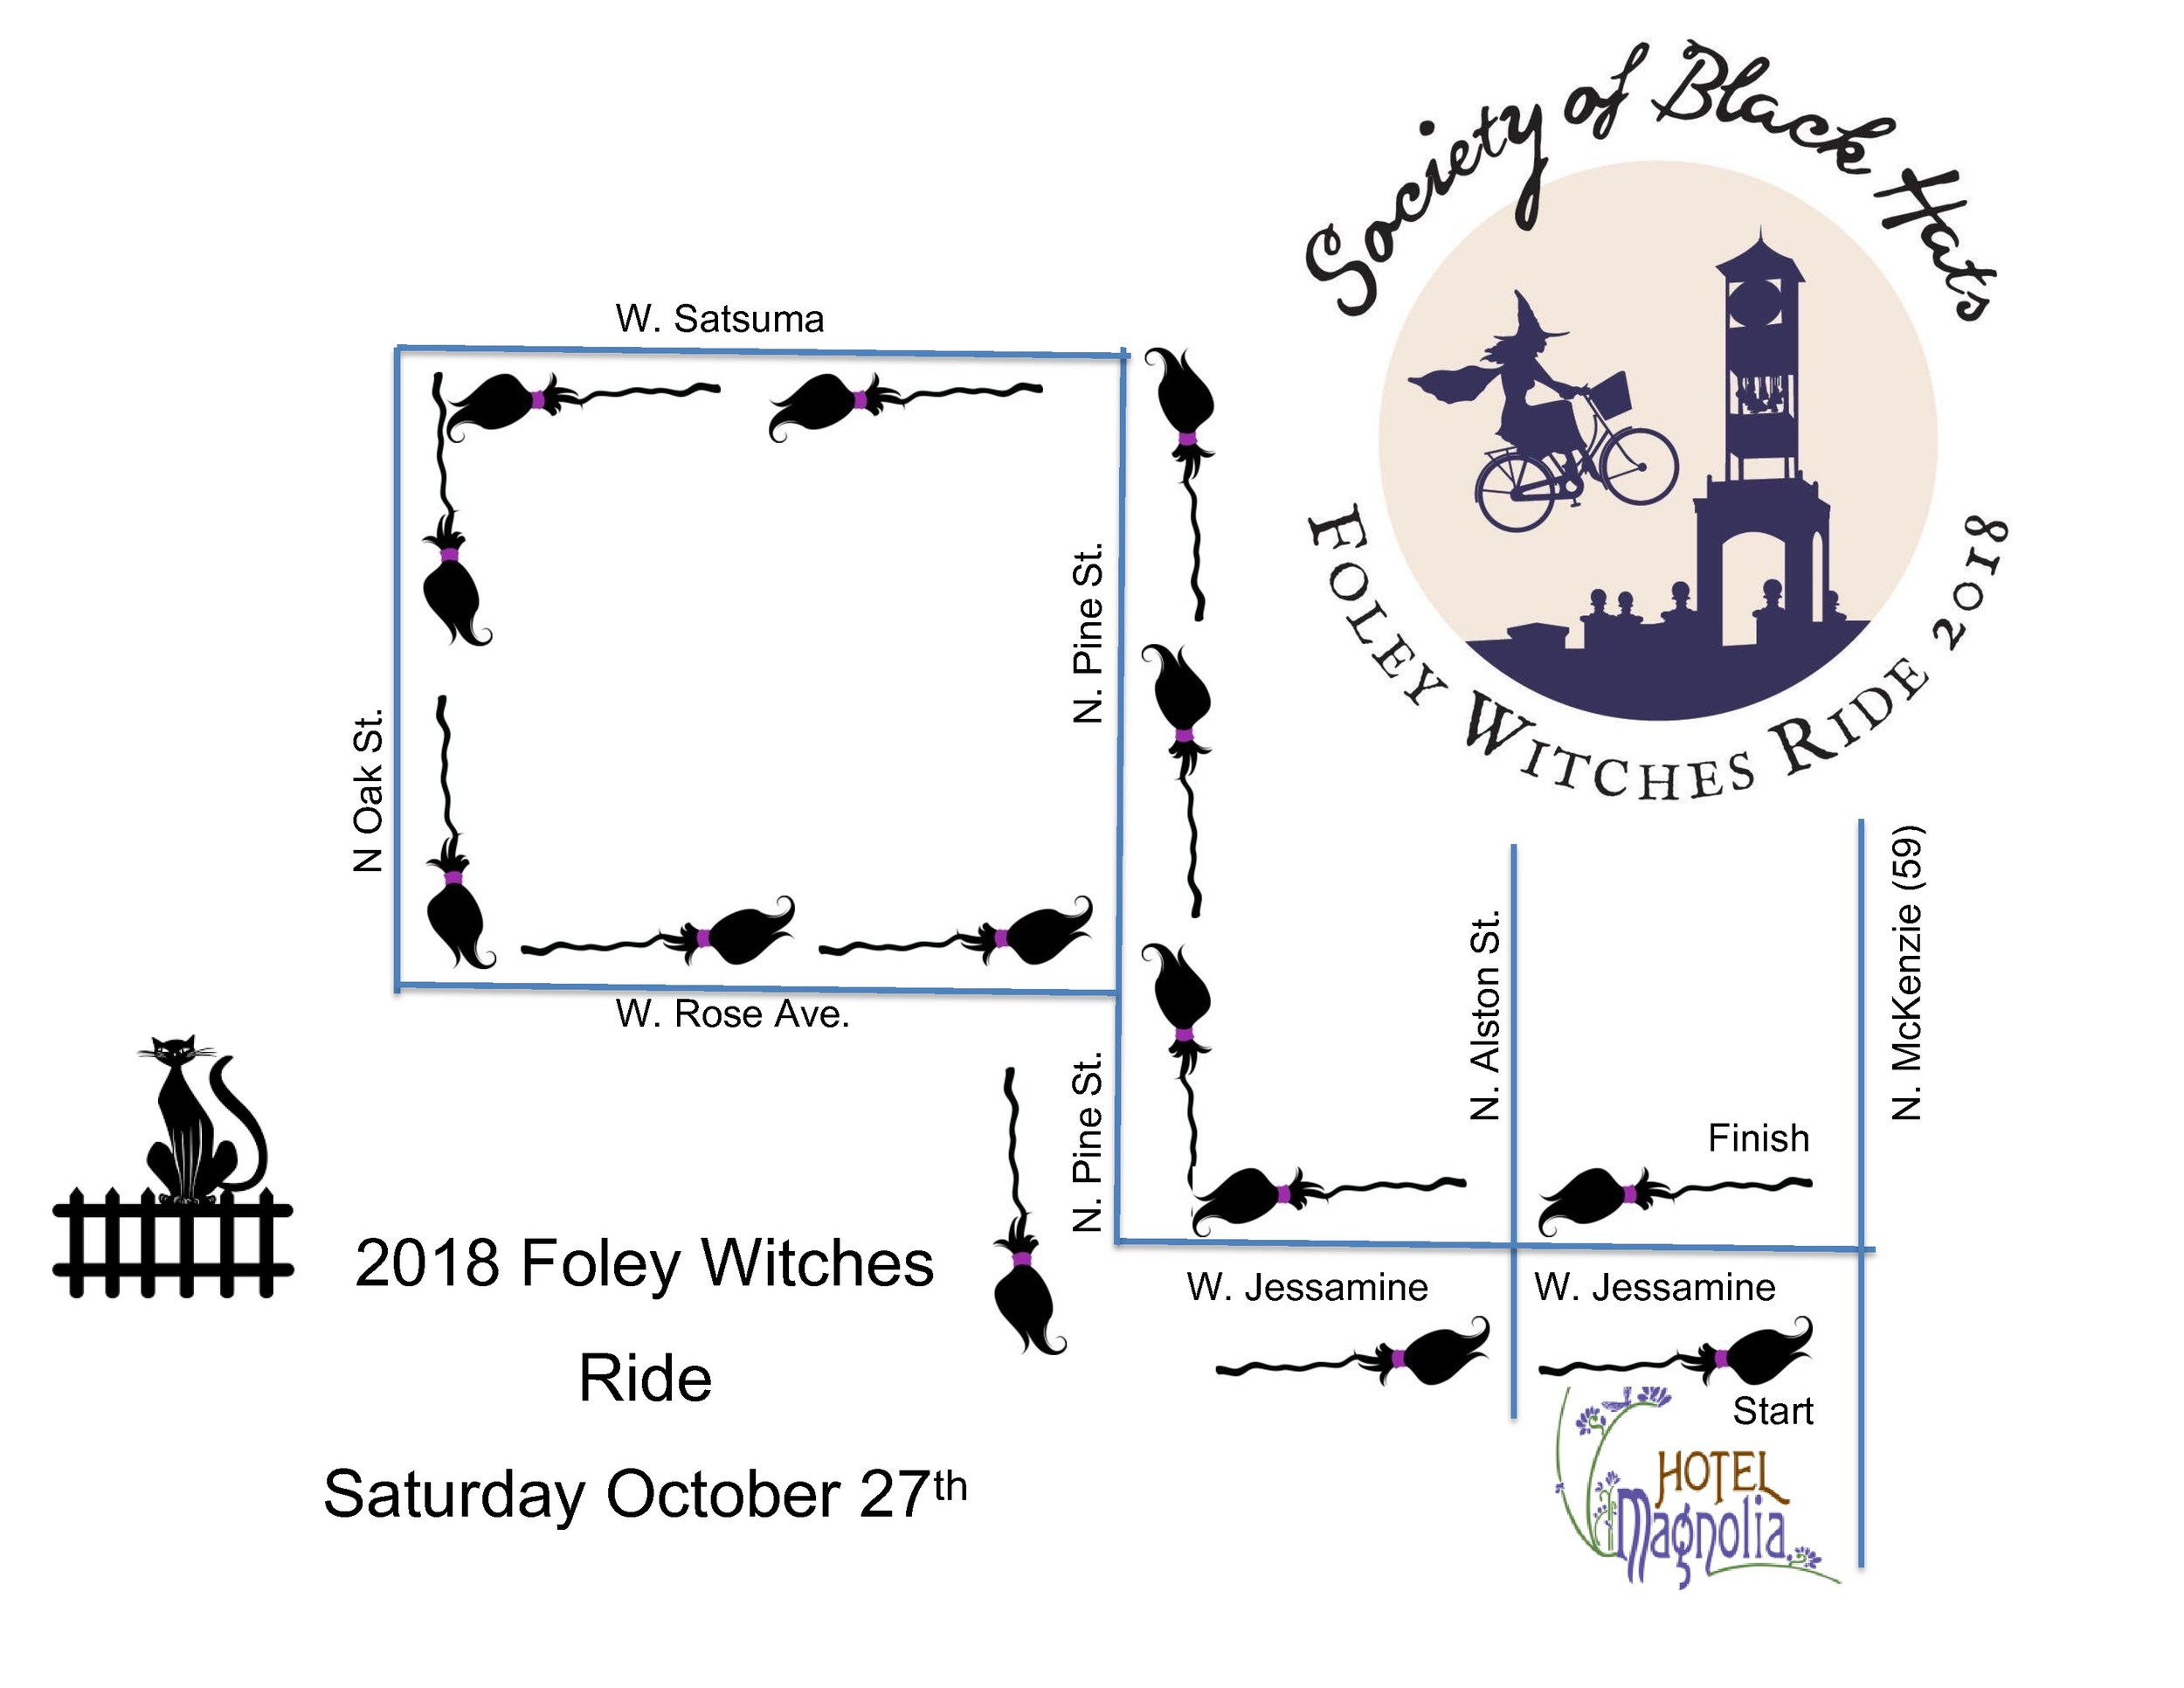 Foley Witches Ride Route Map